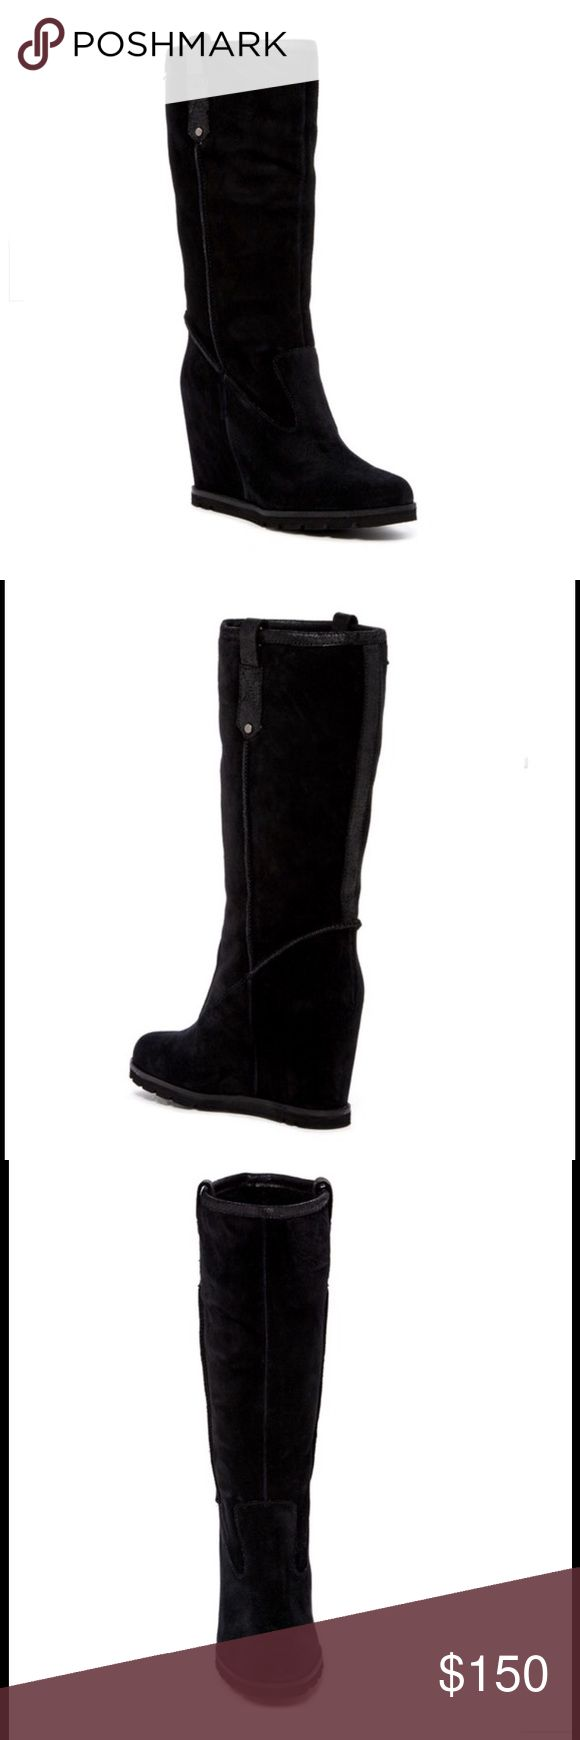 """UGG Genuine Shearling Tall Boot UGG Australia Soleil Genuine Shearling Tall Wedge Boot. New in box. Smooth, rich suede shapes a sophisticated knee-high boot with a sturdy wedge heel. The soft, cozy lining is made from genuine shearling that provides cozy warmth when the temperature drops. - Almond toe - Suede construction - Topstitched detail - Leather and genuine shearling lining - Pull-on - Wedge heel - Approx. 12"""" shaft height, 16"""" opening circumference - Approx. 4"""" heel UGG Shoes Heeled…"""